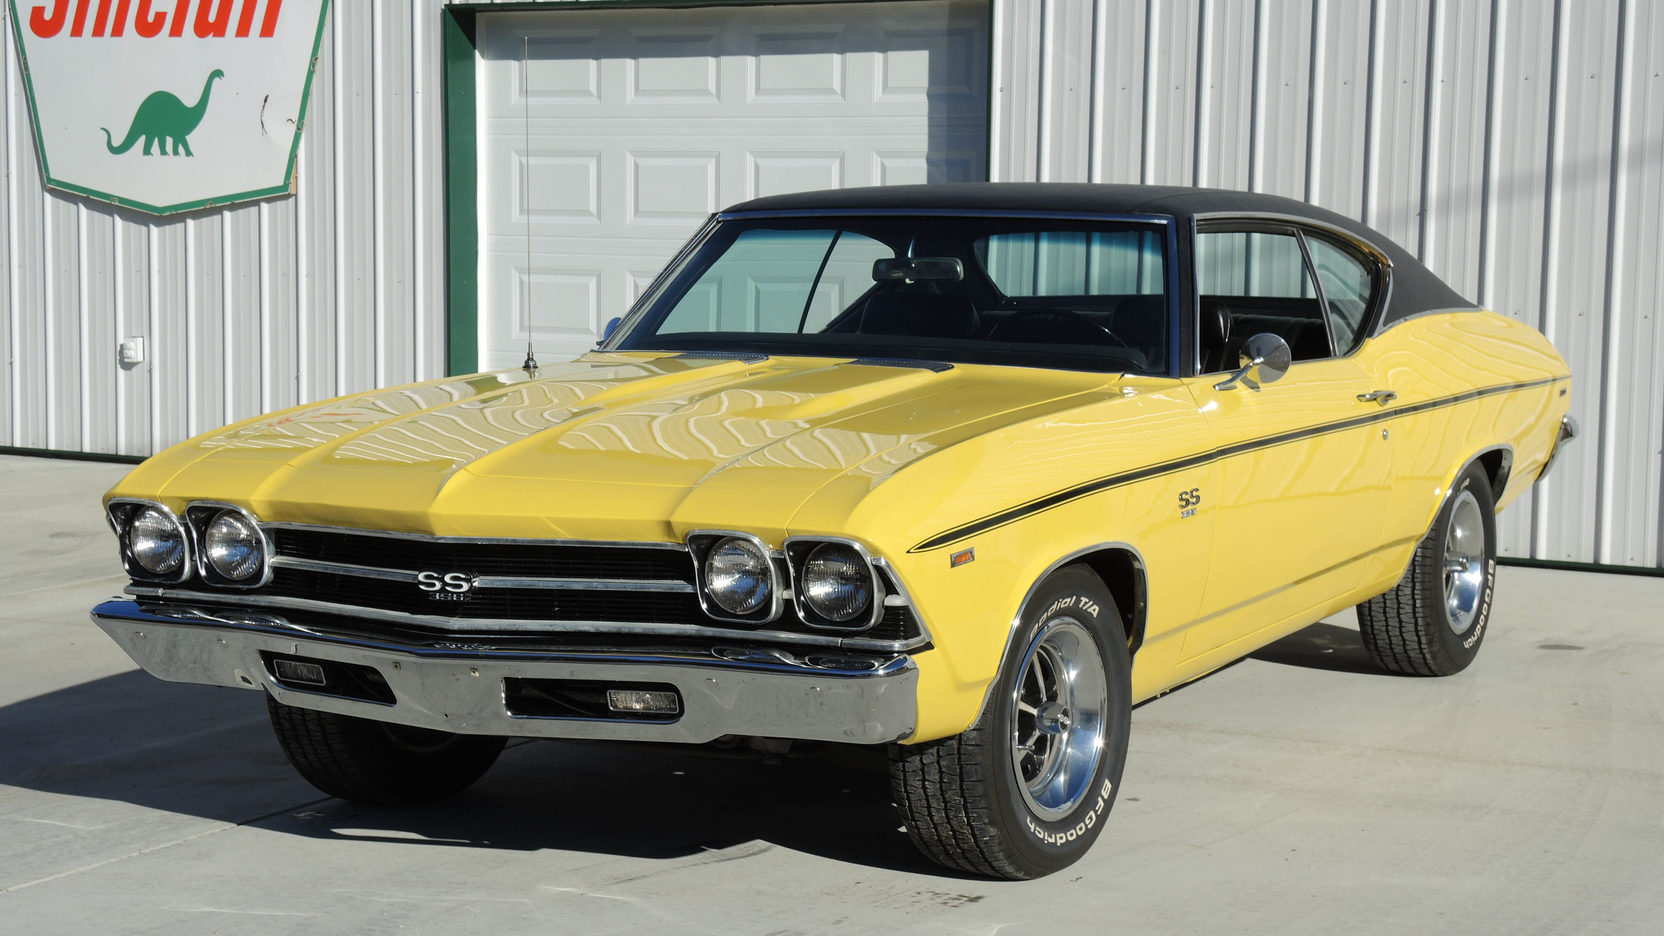 69 Chevelle Ss 454 Yellow